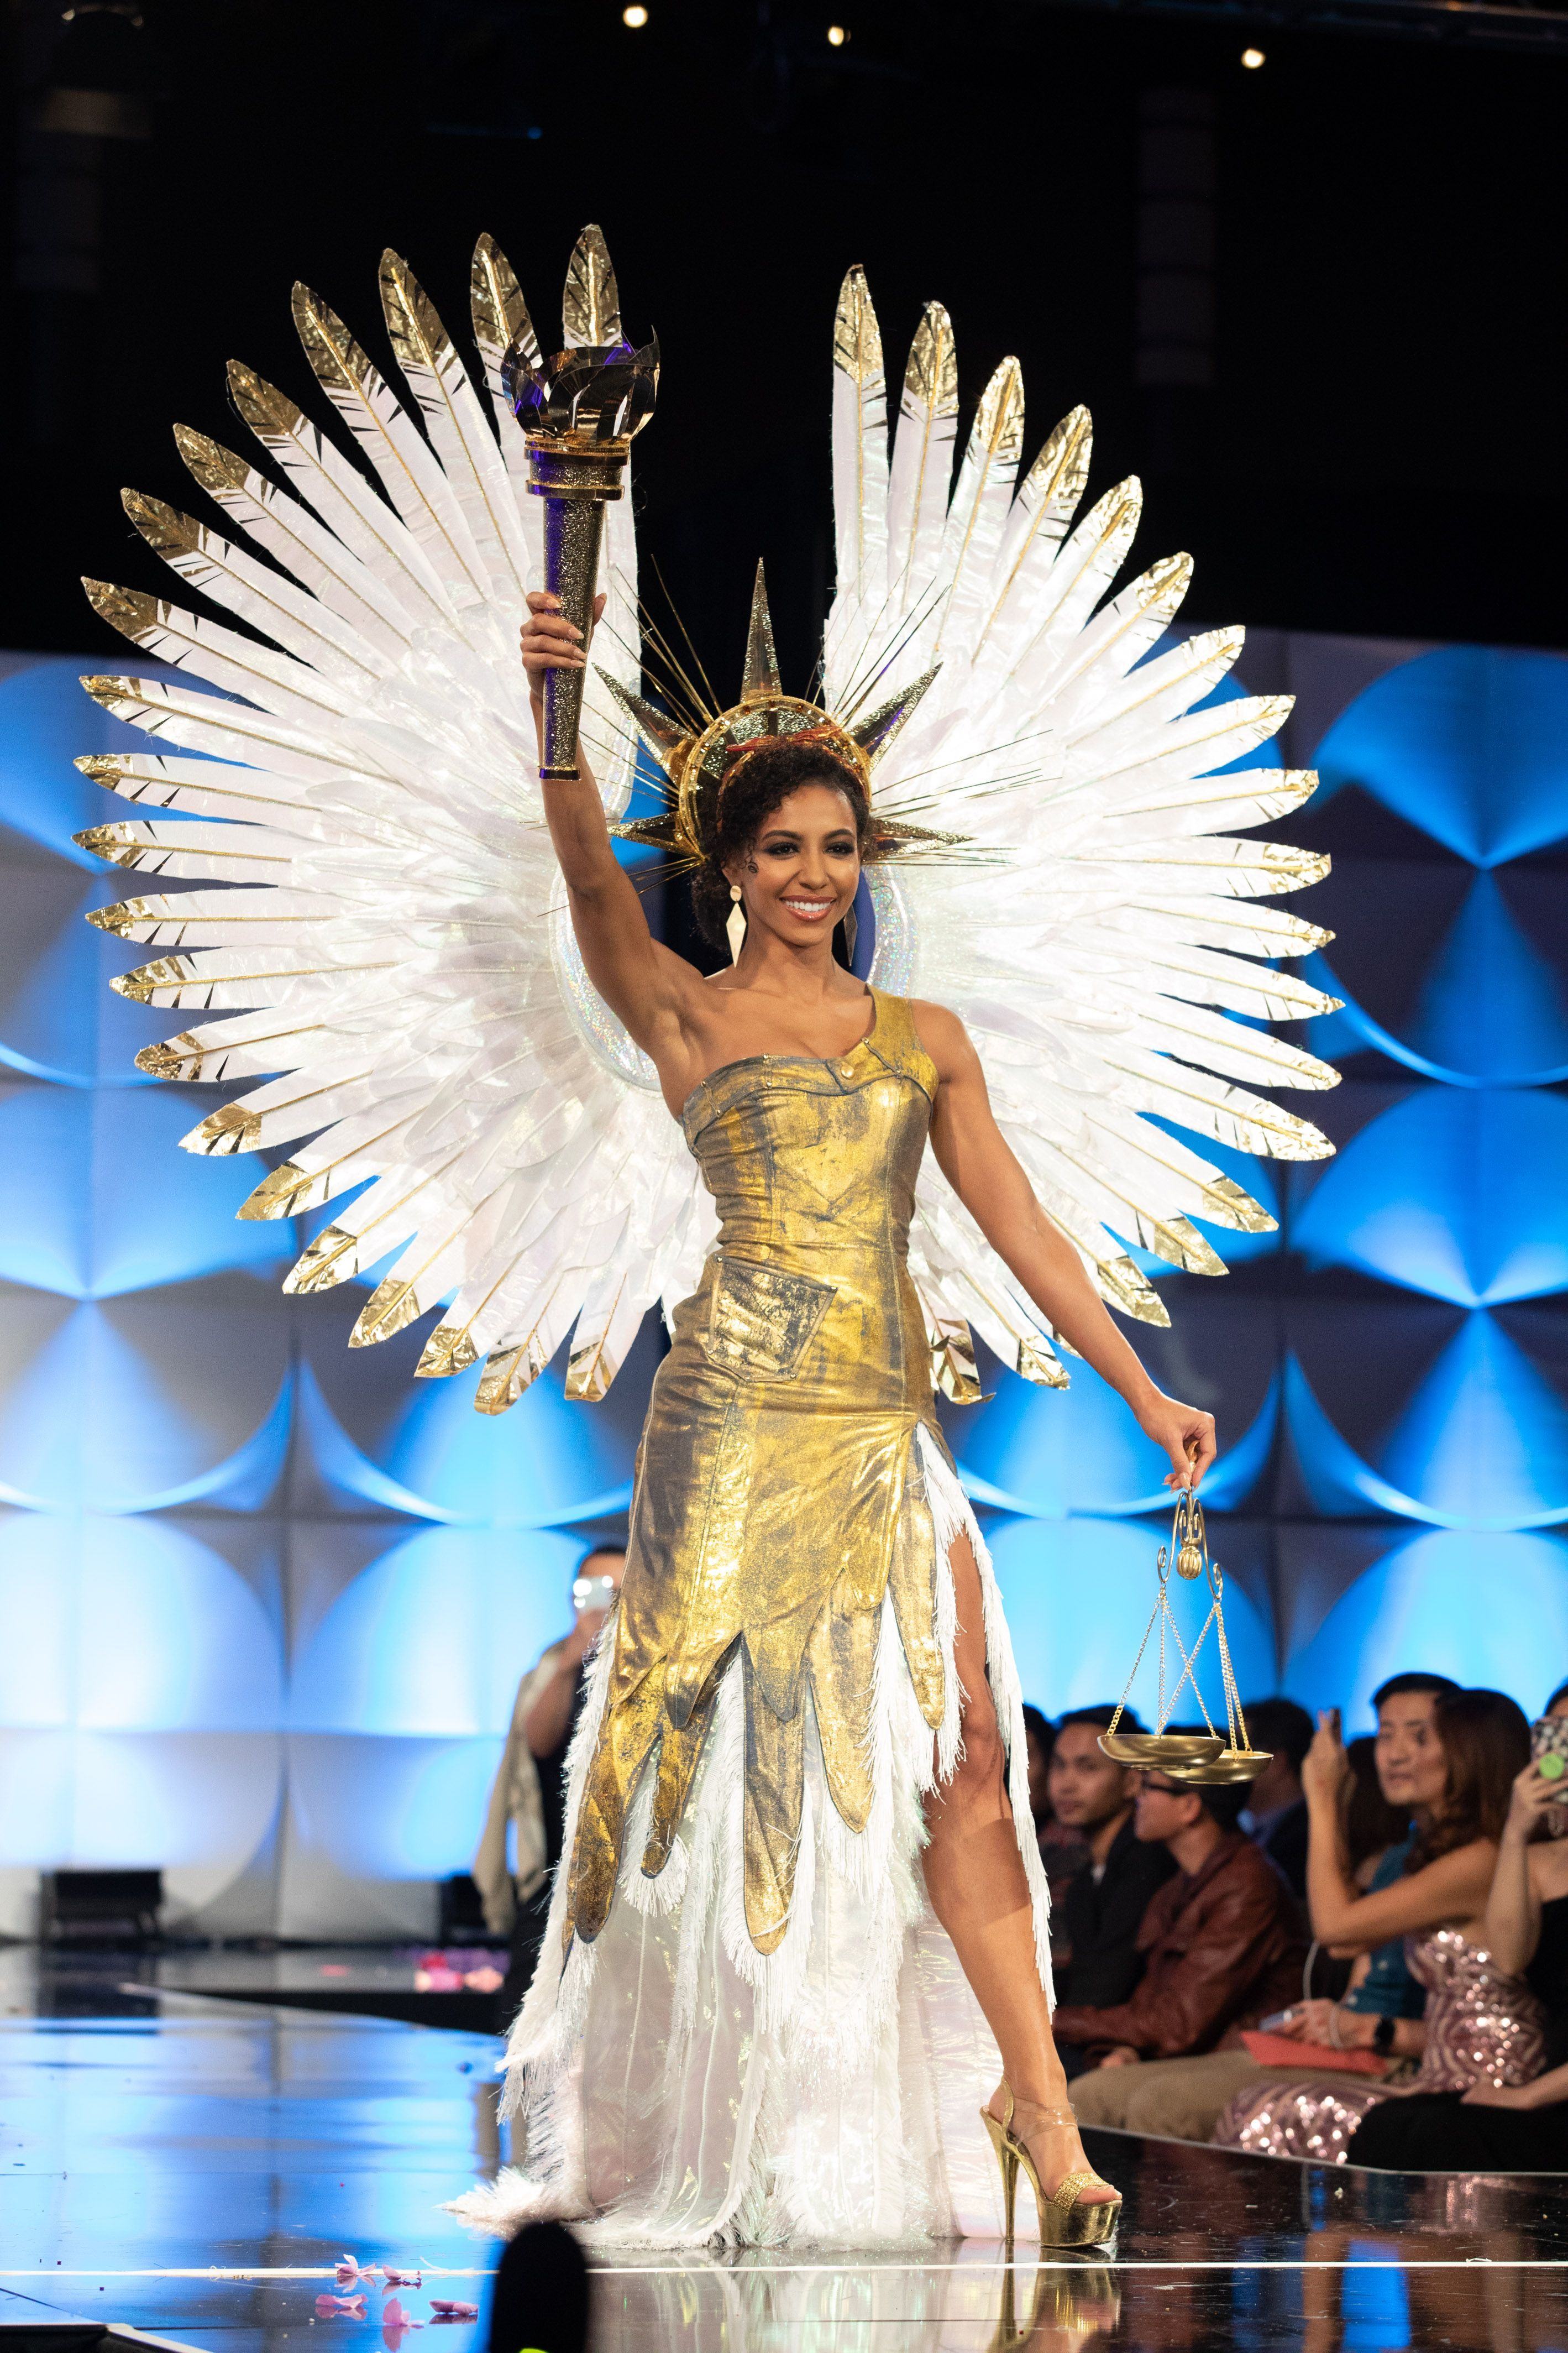 Miss Universe 2019 National Costume Competition Hosted At The Tyler Perry Studios In Atlanta Georgia During The Page In 2020 Miss Universe Gowns Pageant Life Pageant